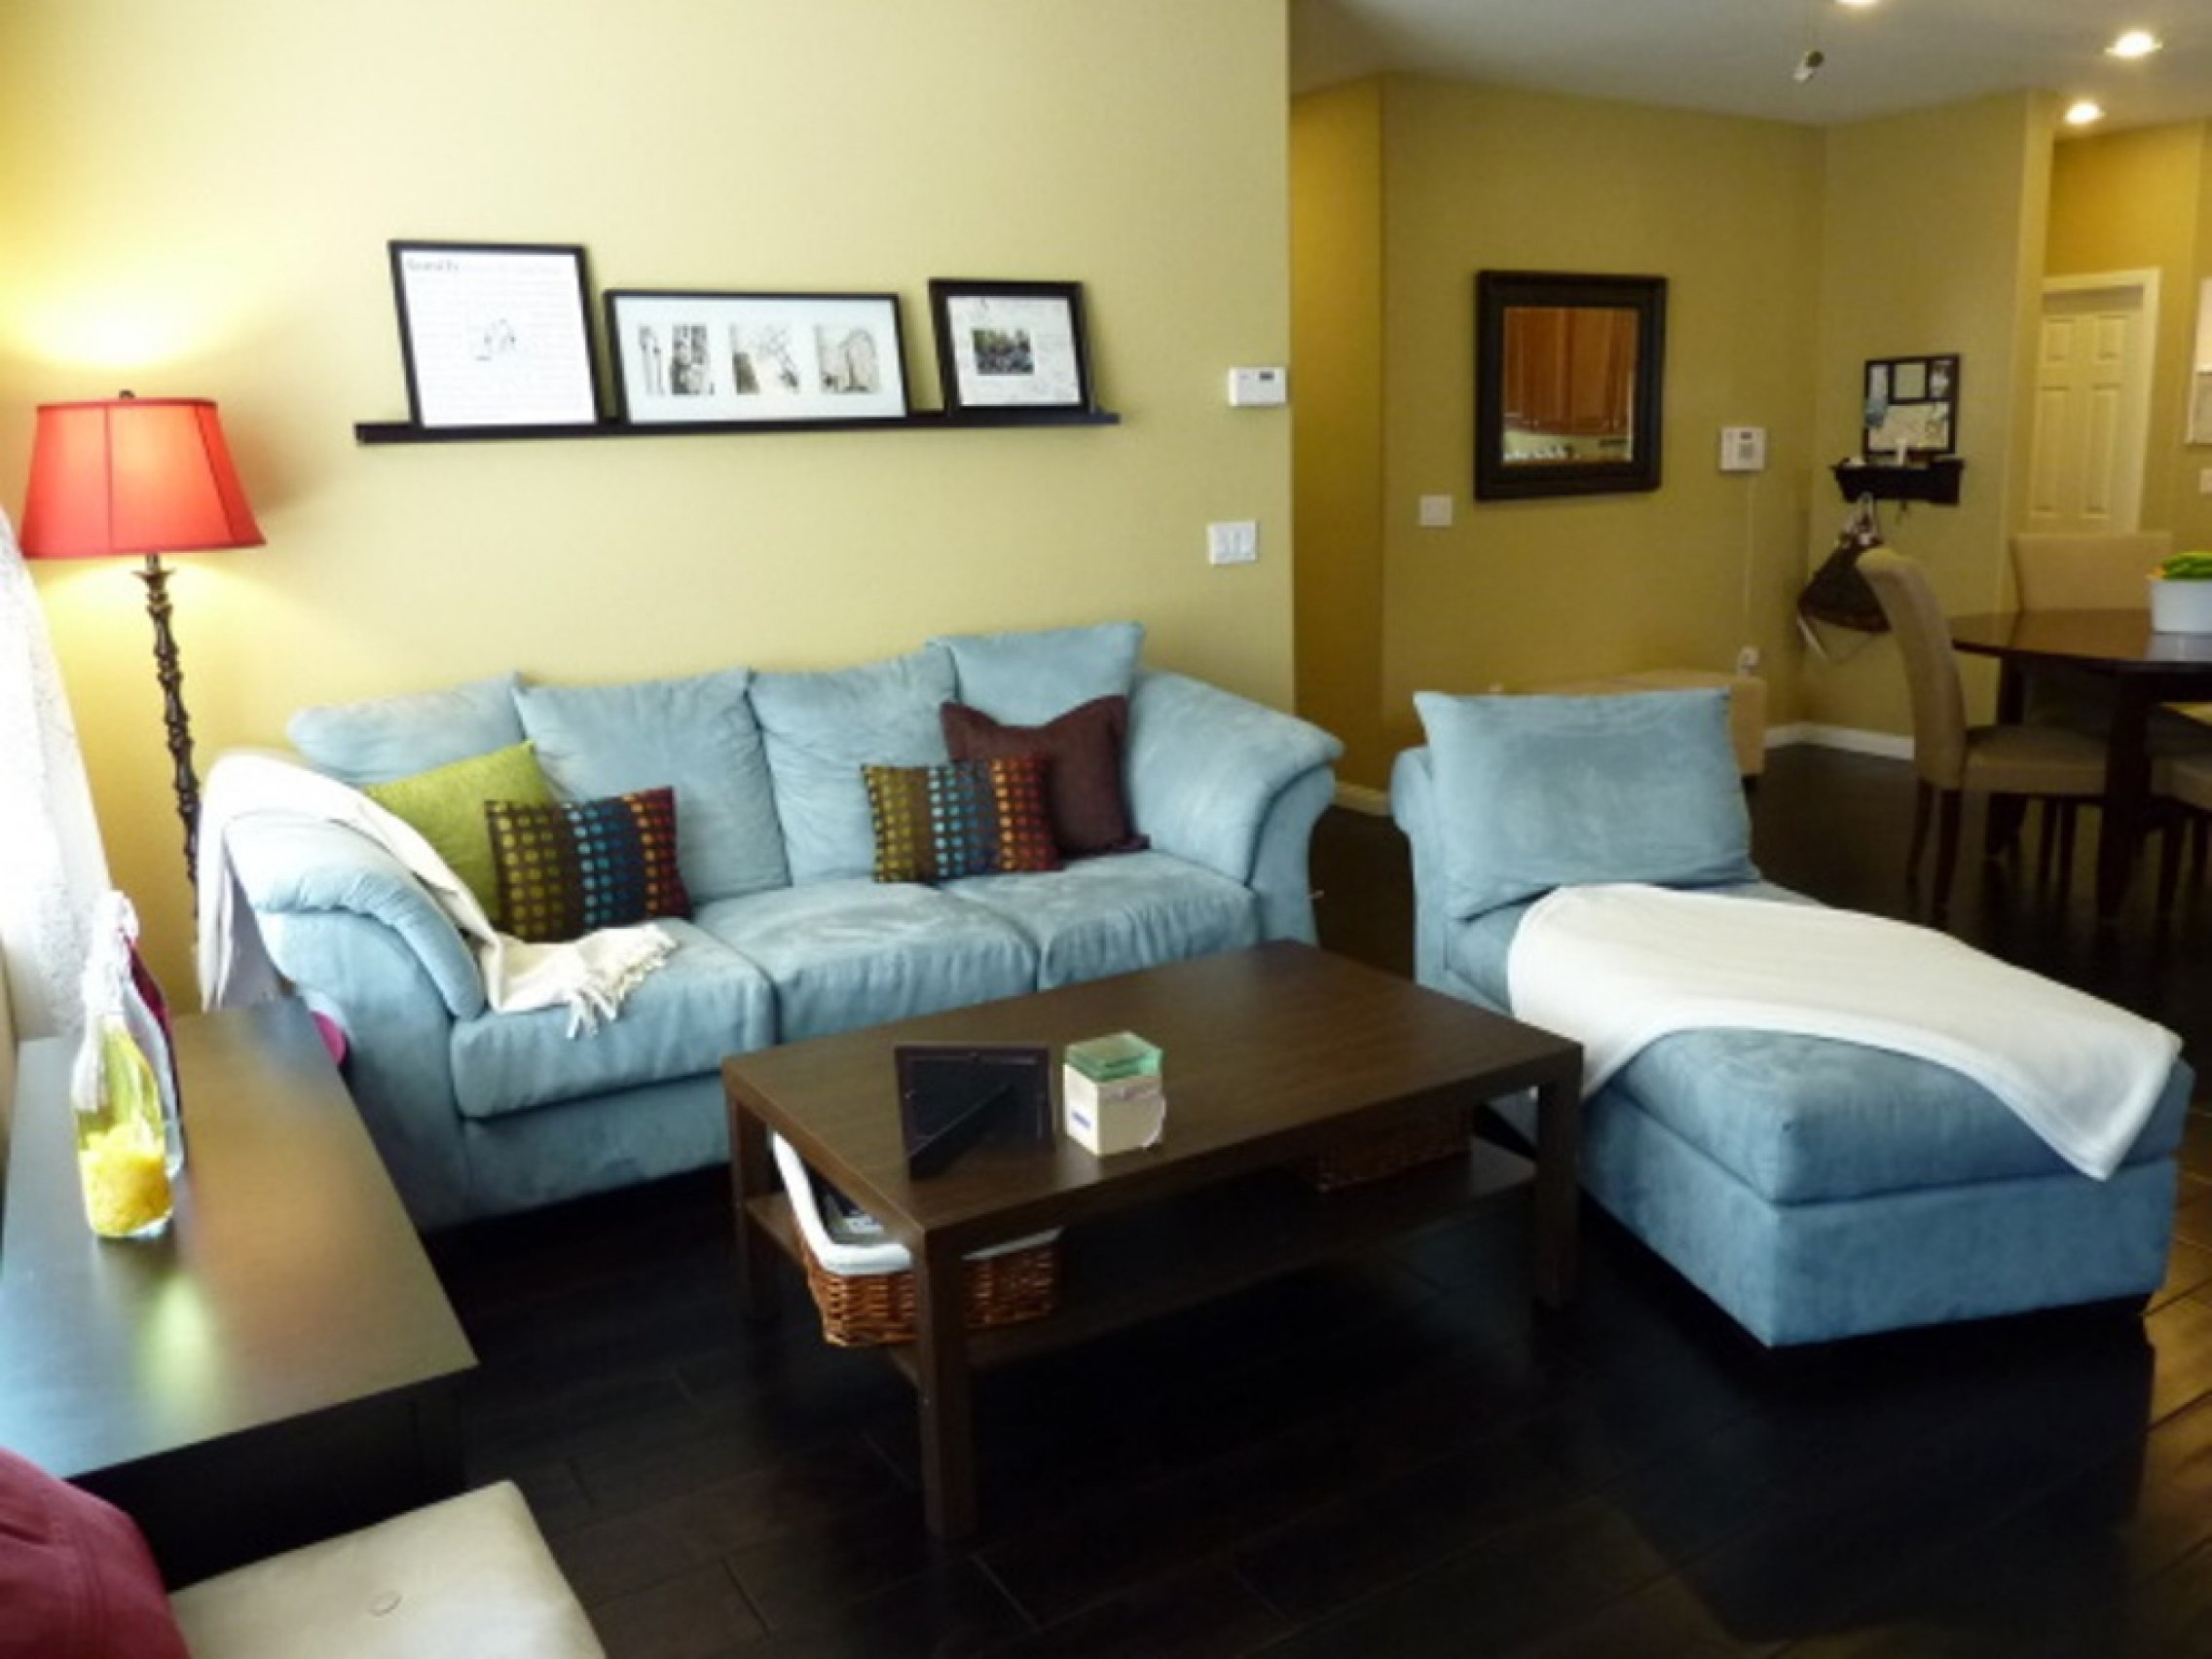 10 Stylish Living Room Ideas On A Budget living room design ideas on a budget decorating for small rooms 1